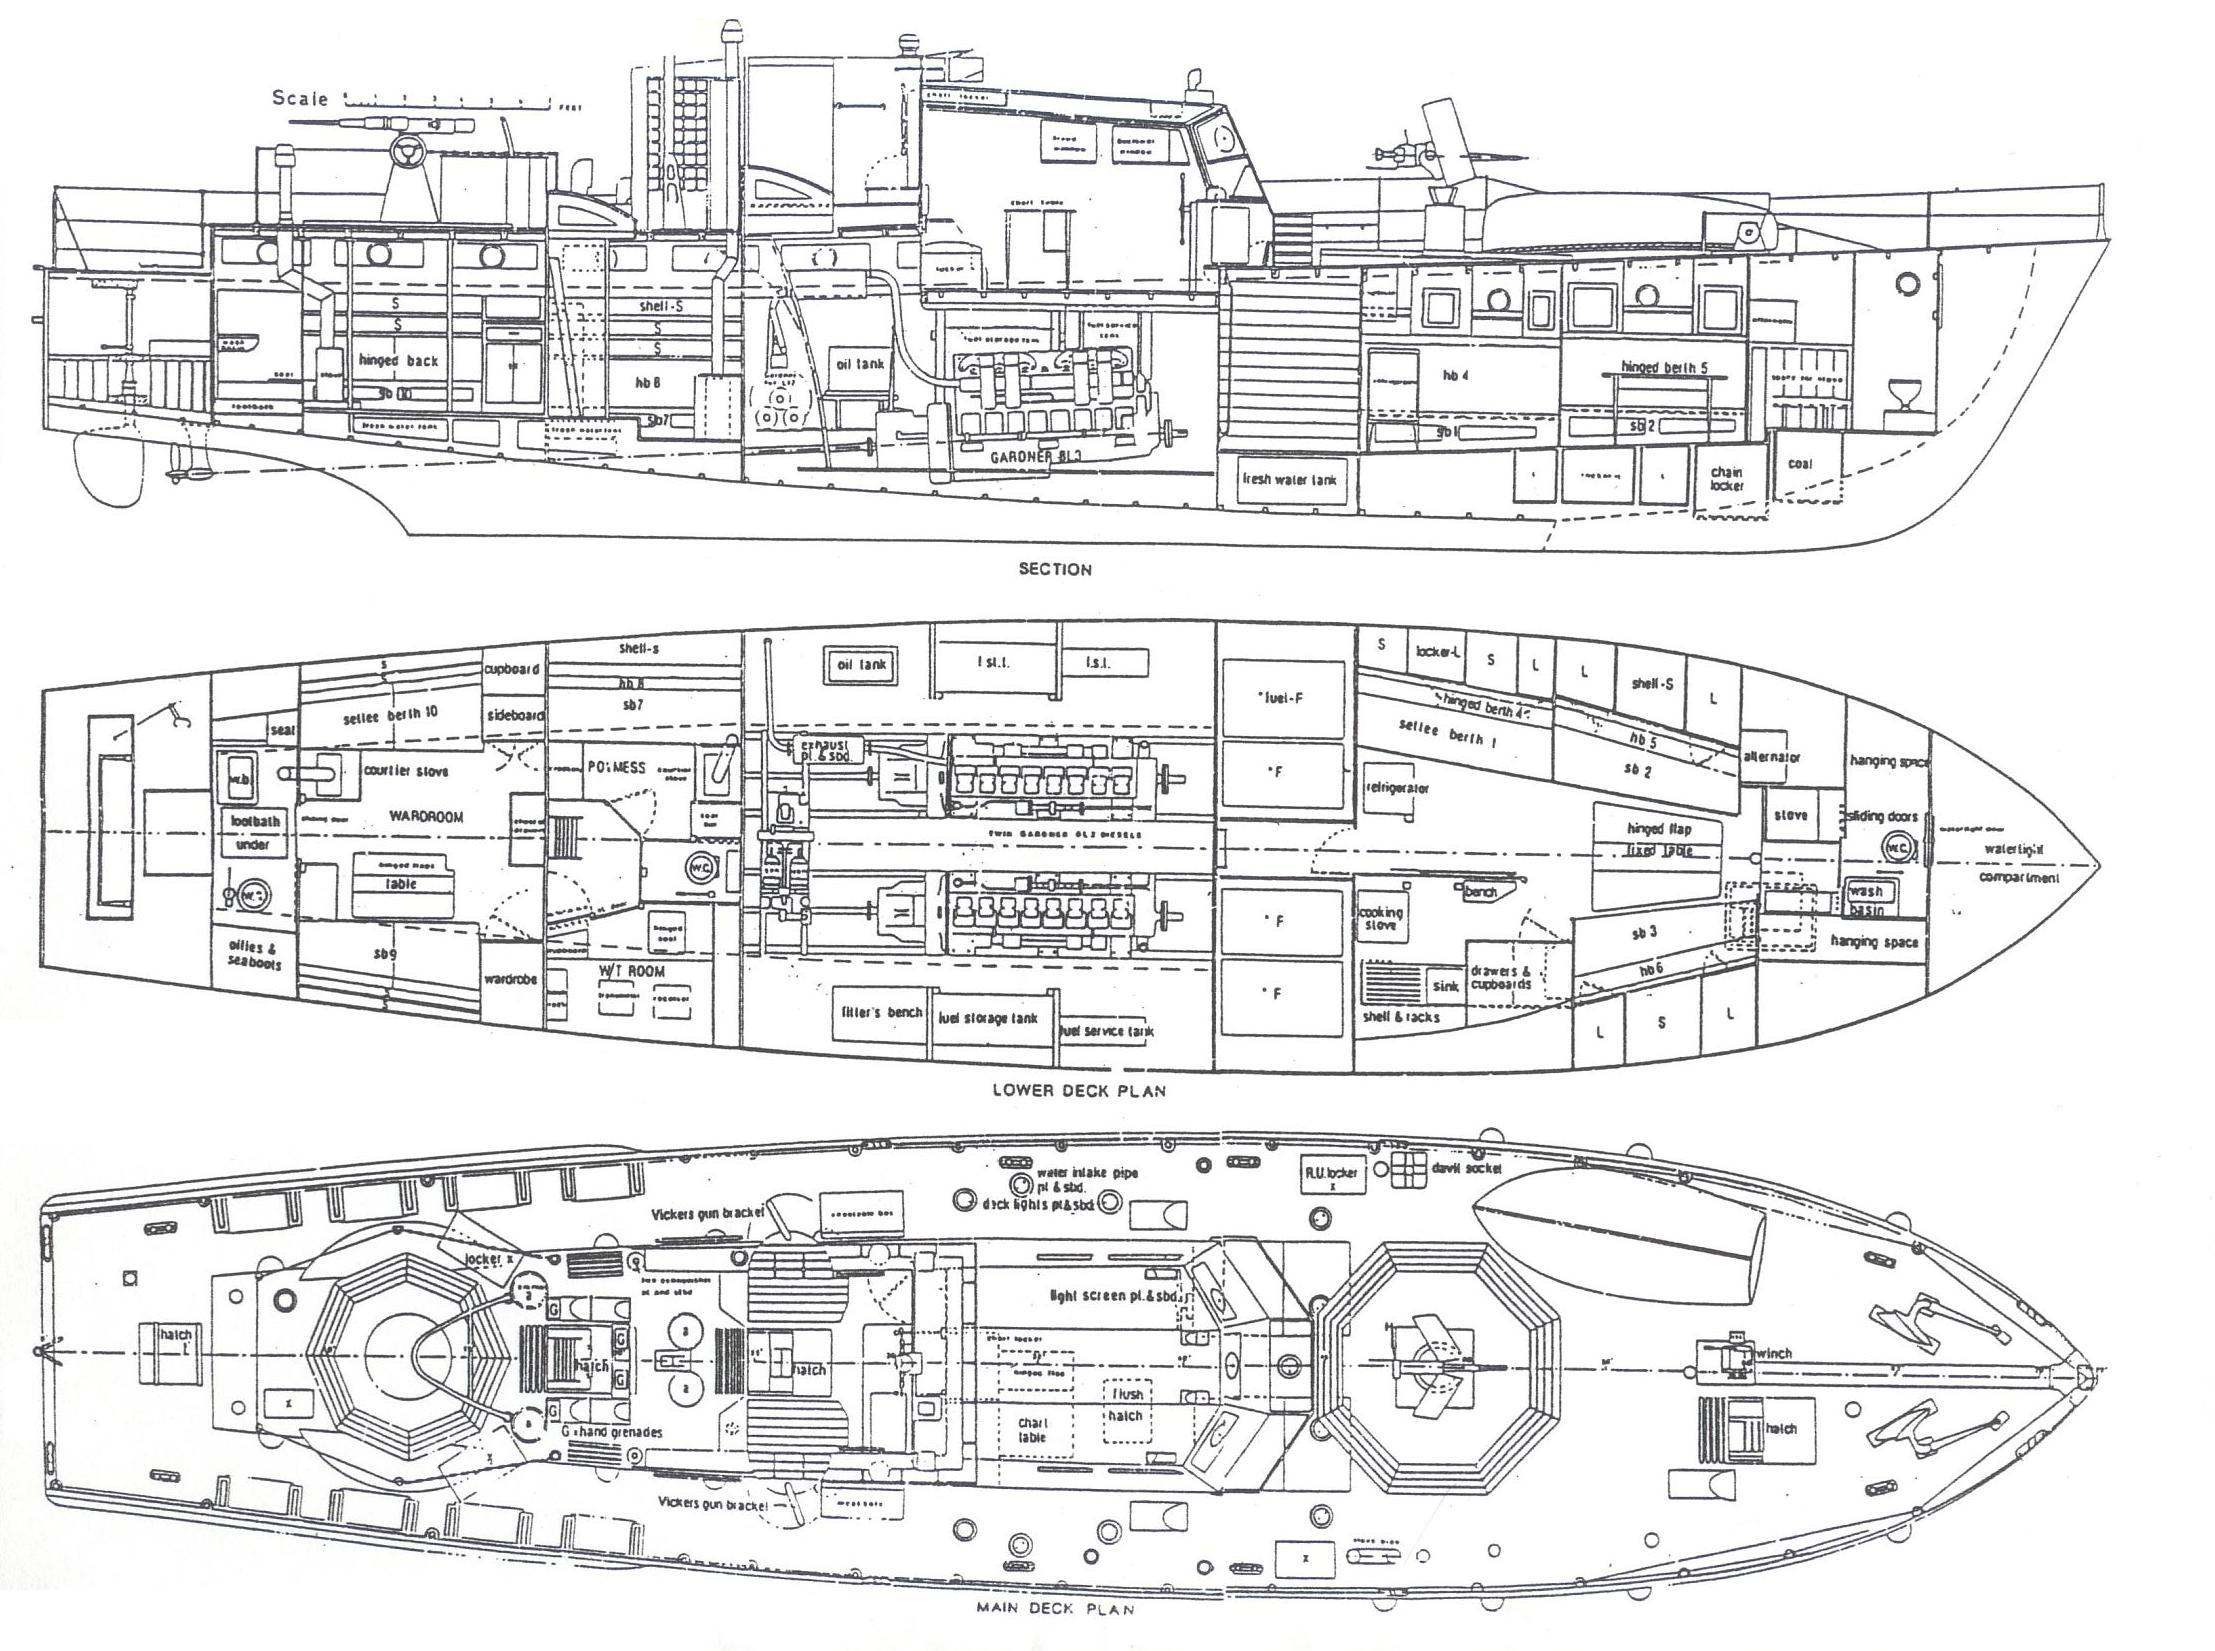 Us Navy Ship Blueprints Ship Plans And Blueprints Boat